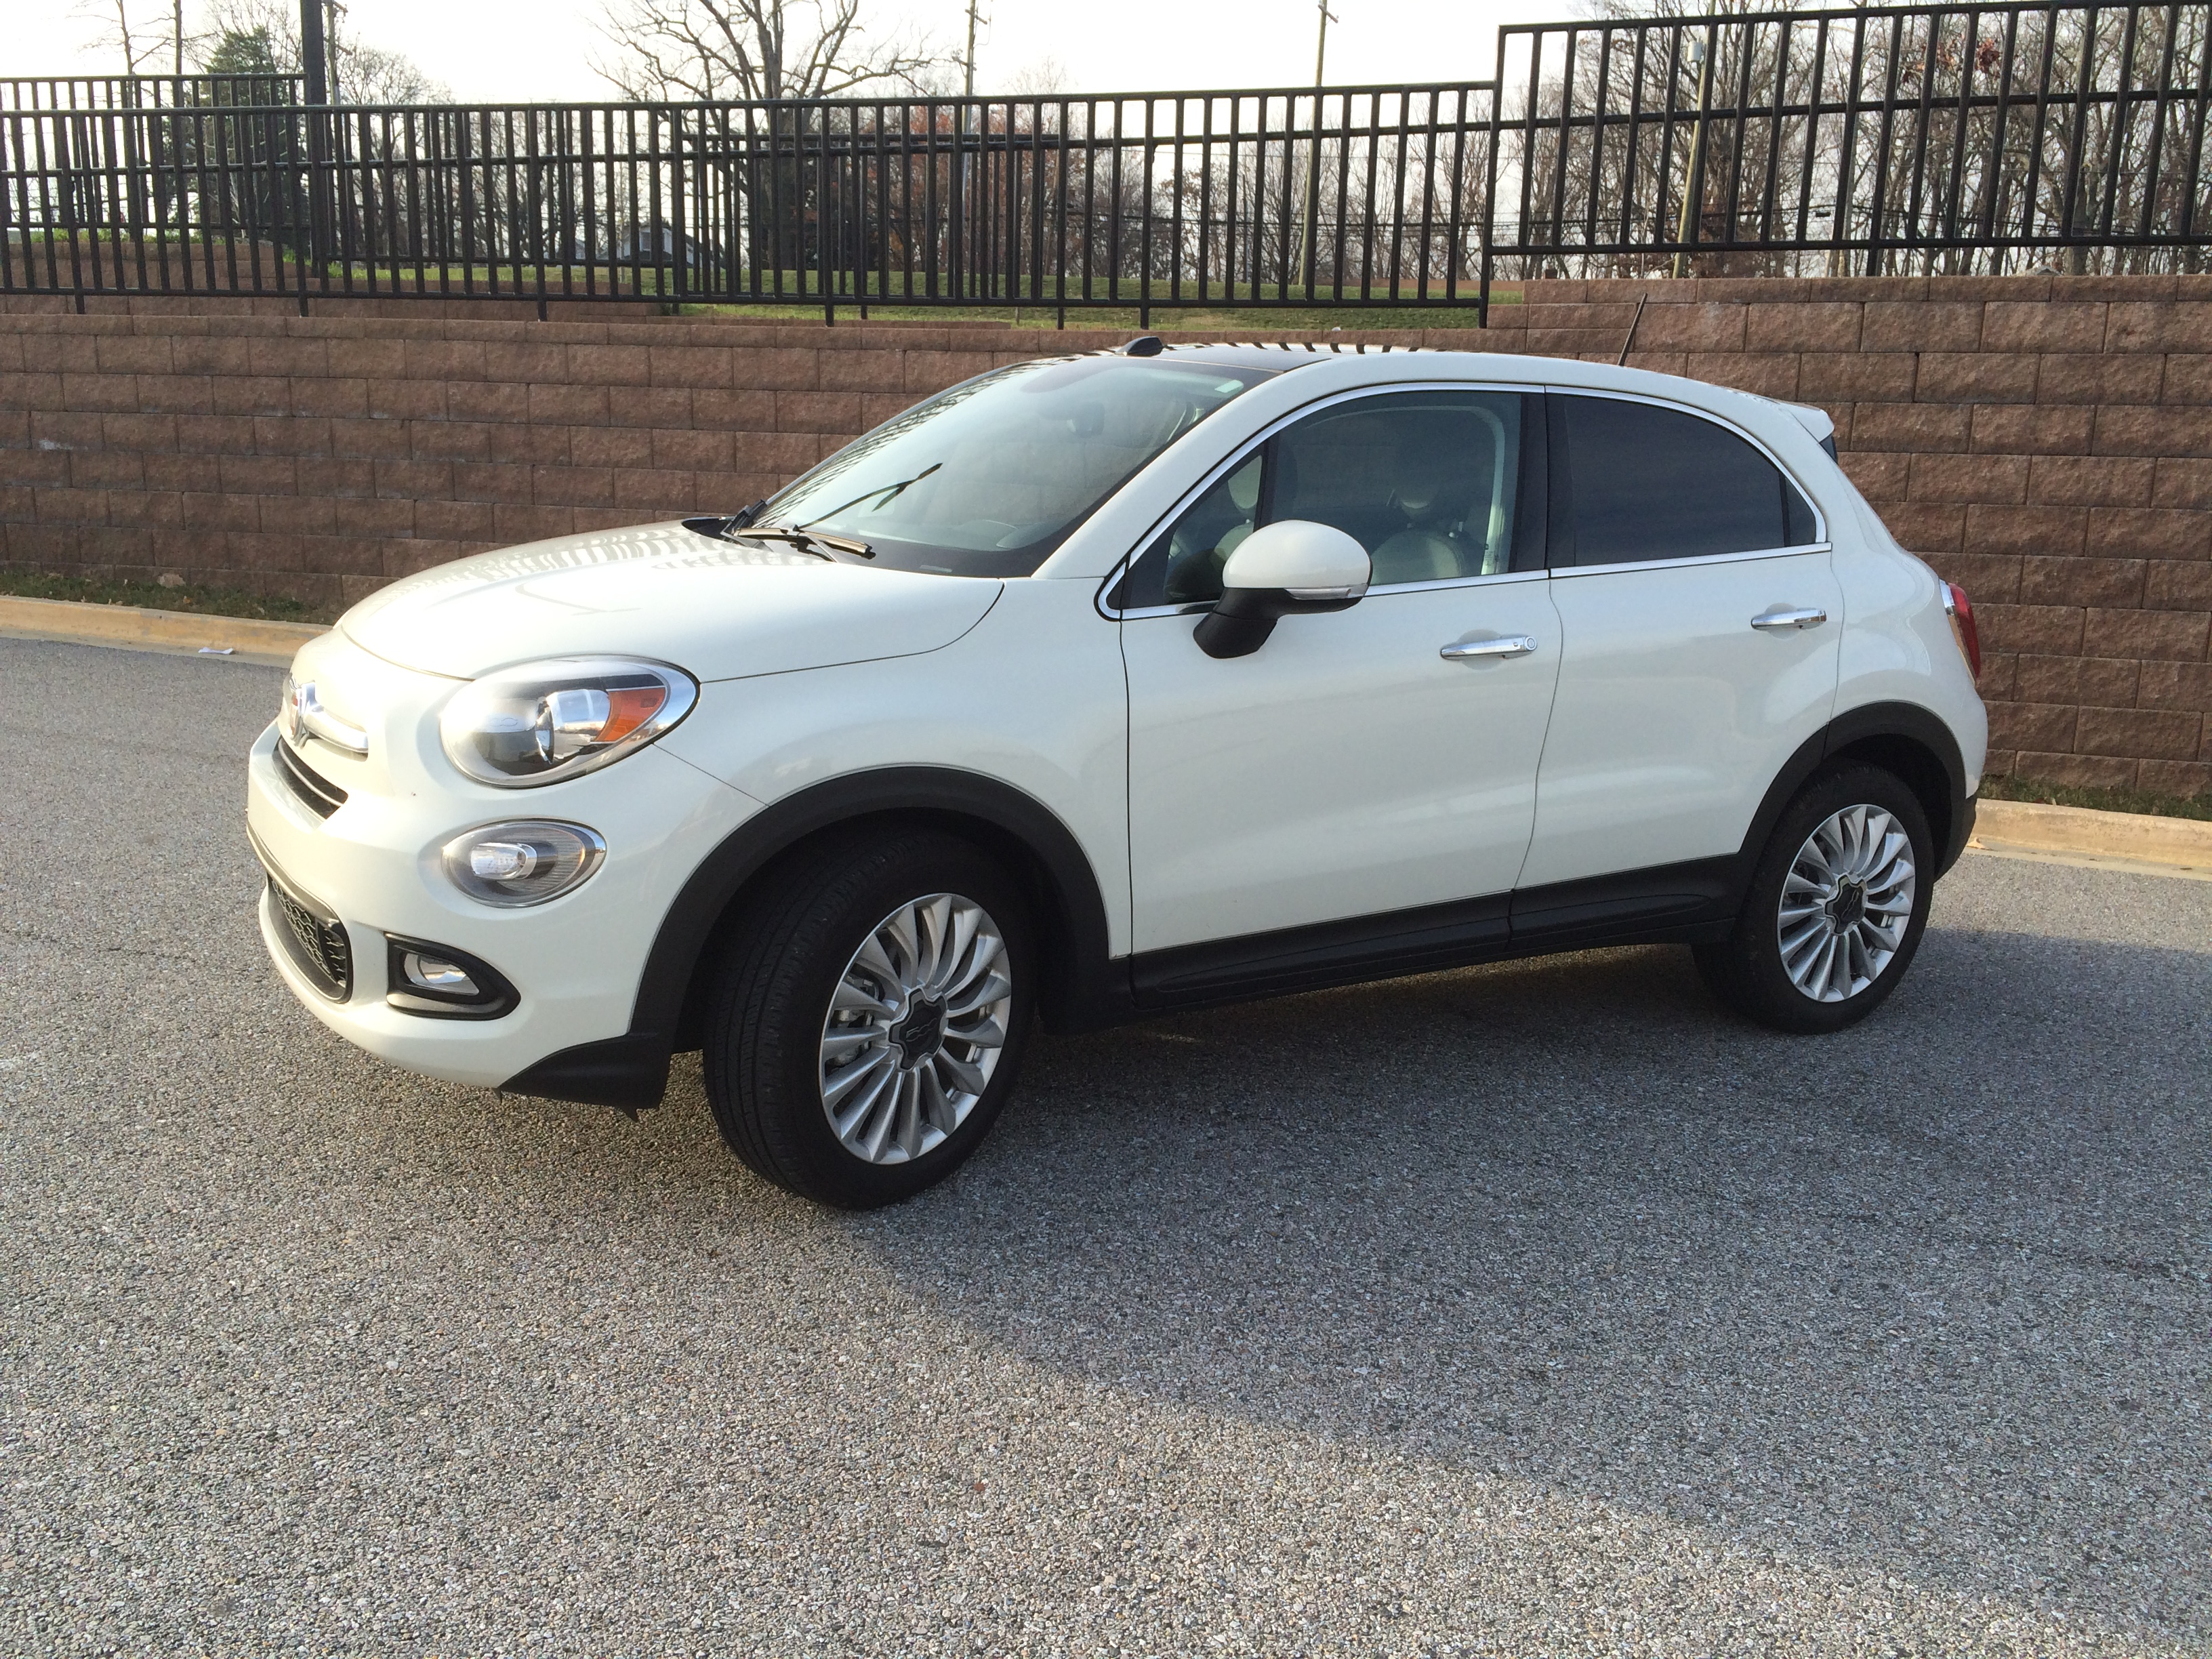 fiat goes mainstream with the 2016 fiat 500x compact crossover wtop. Black Bedroom Furniture Sets. Home Design Ideas